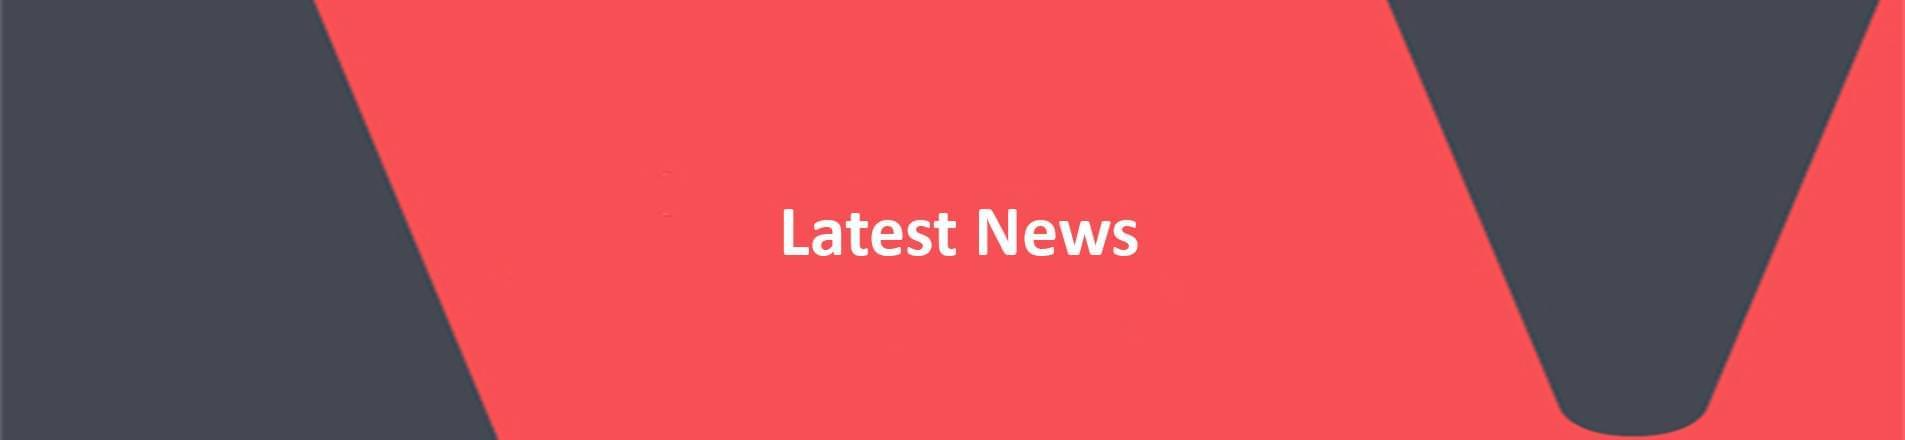 The words latest news on a red VERCIDA branded background